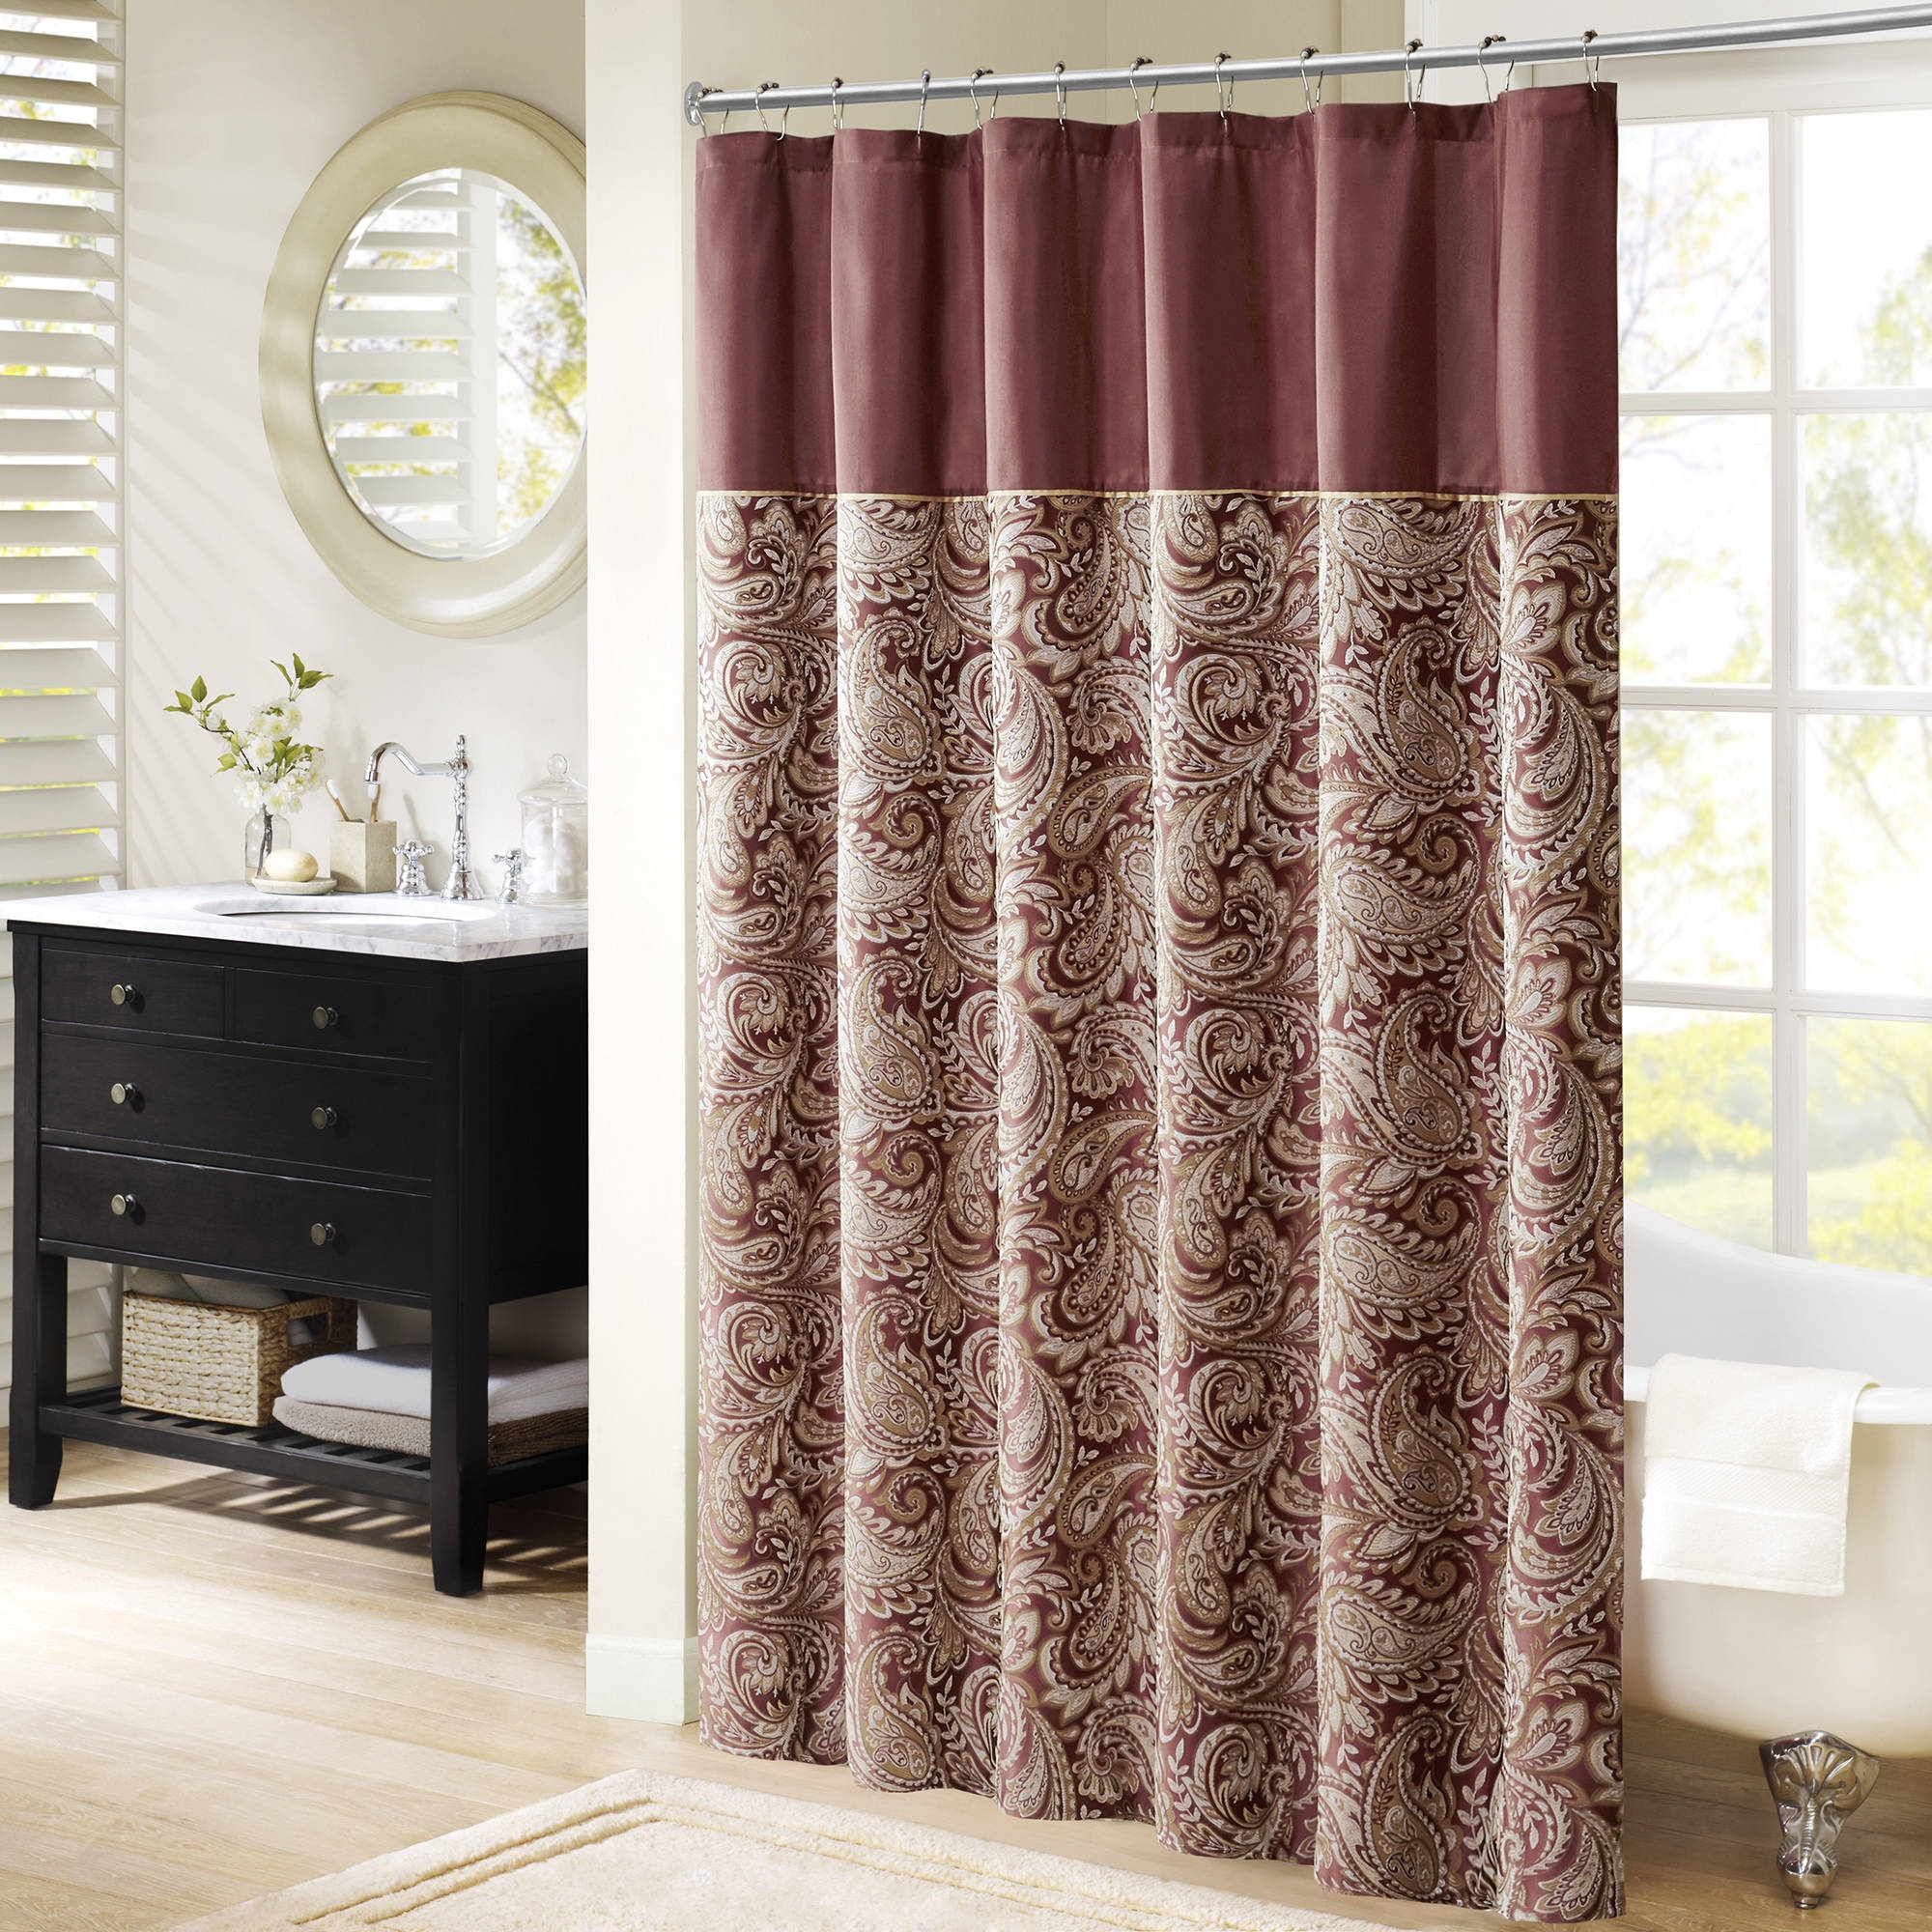 Croscill Mosaic Floral Shower Curtain Shower Curtain Ideas in sizing 2000 X 2000